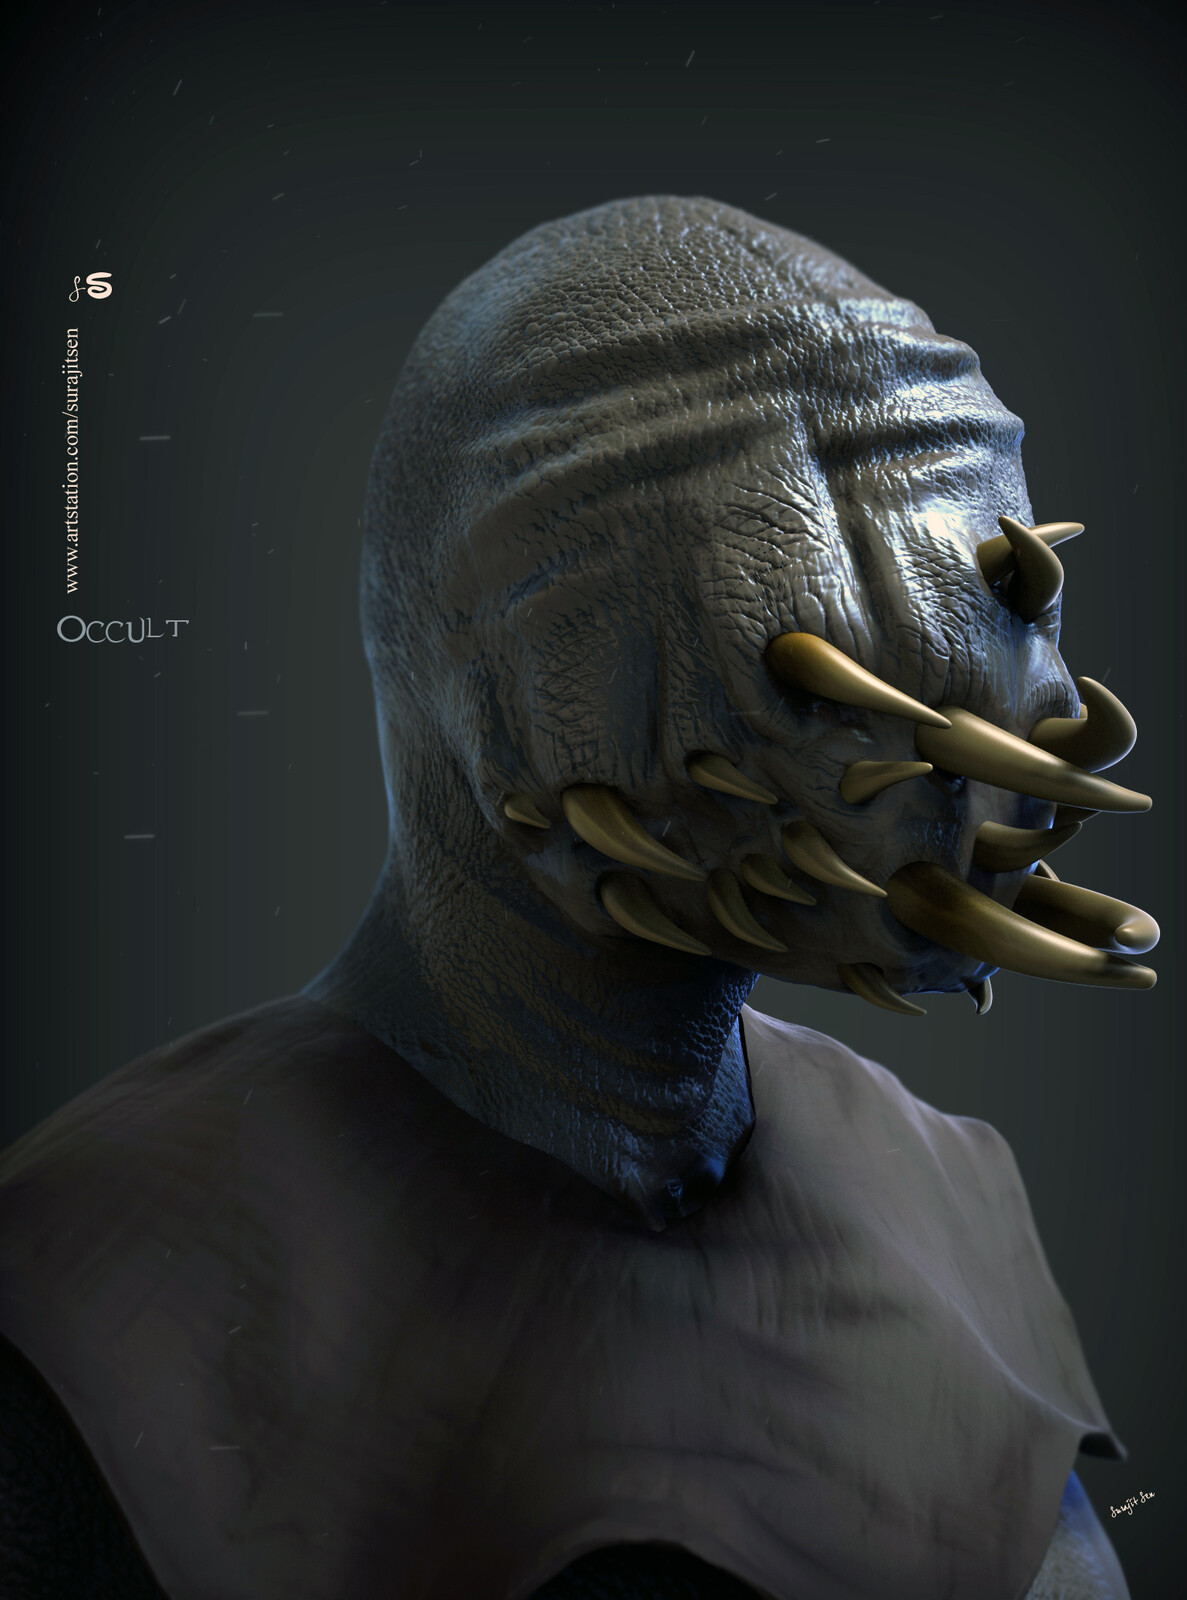 Occult One of my thoughts.. Digital Sculpture. My free time speed Digital Sculpture... Wish to share.